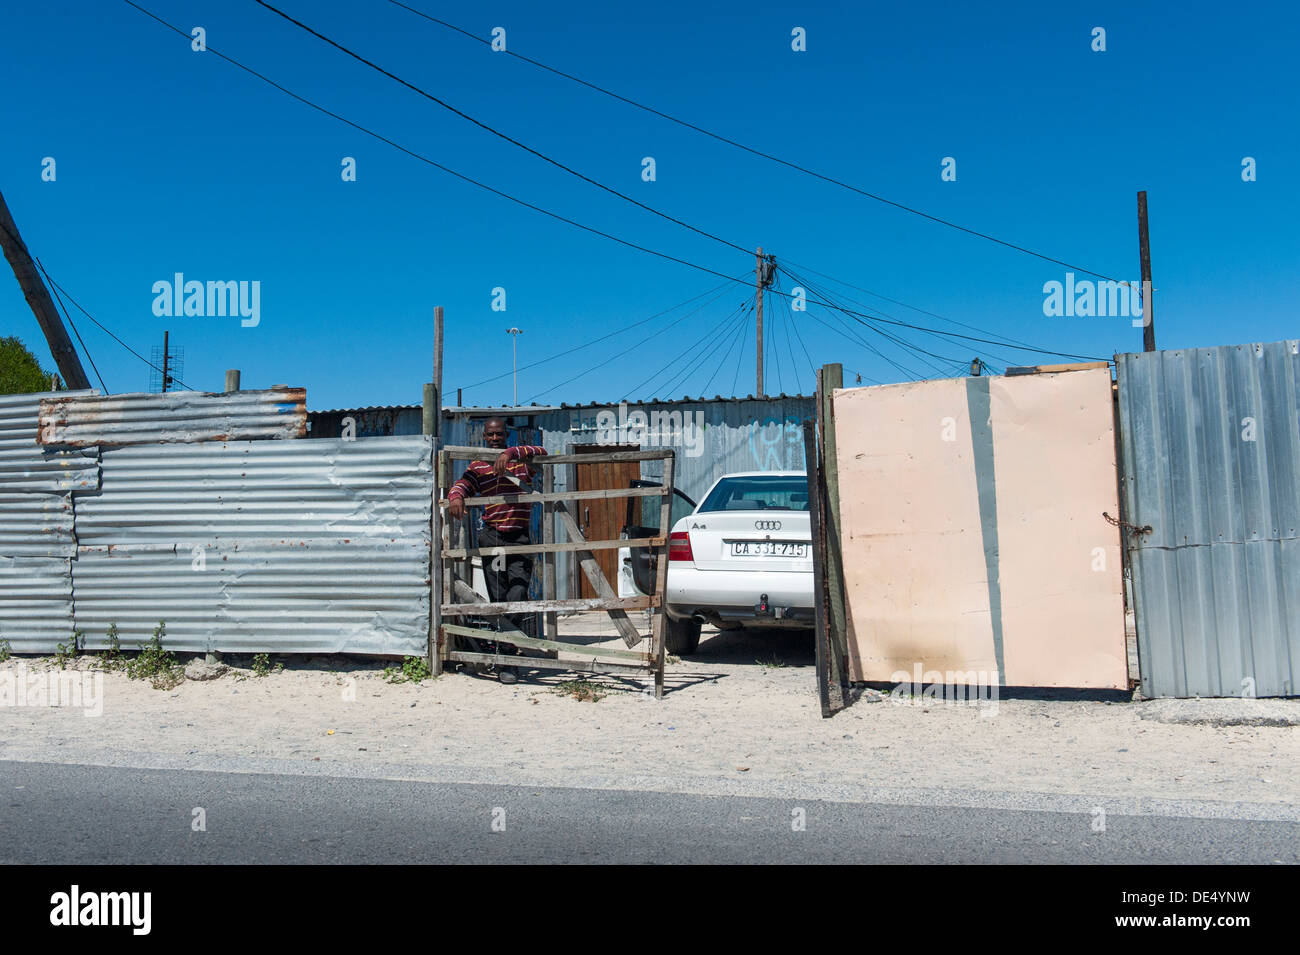 Car owner and parked car in front of a tin shack in Khayelitsha, Cape Town, South Africa Stock Photo